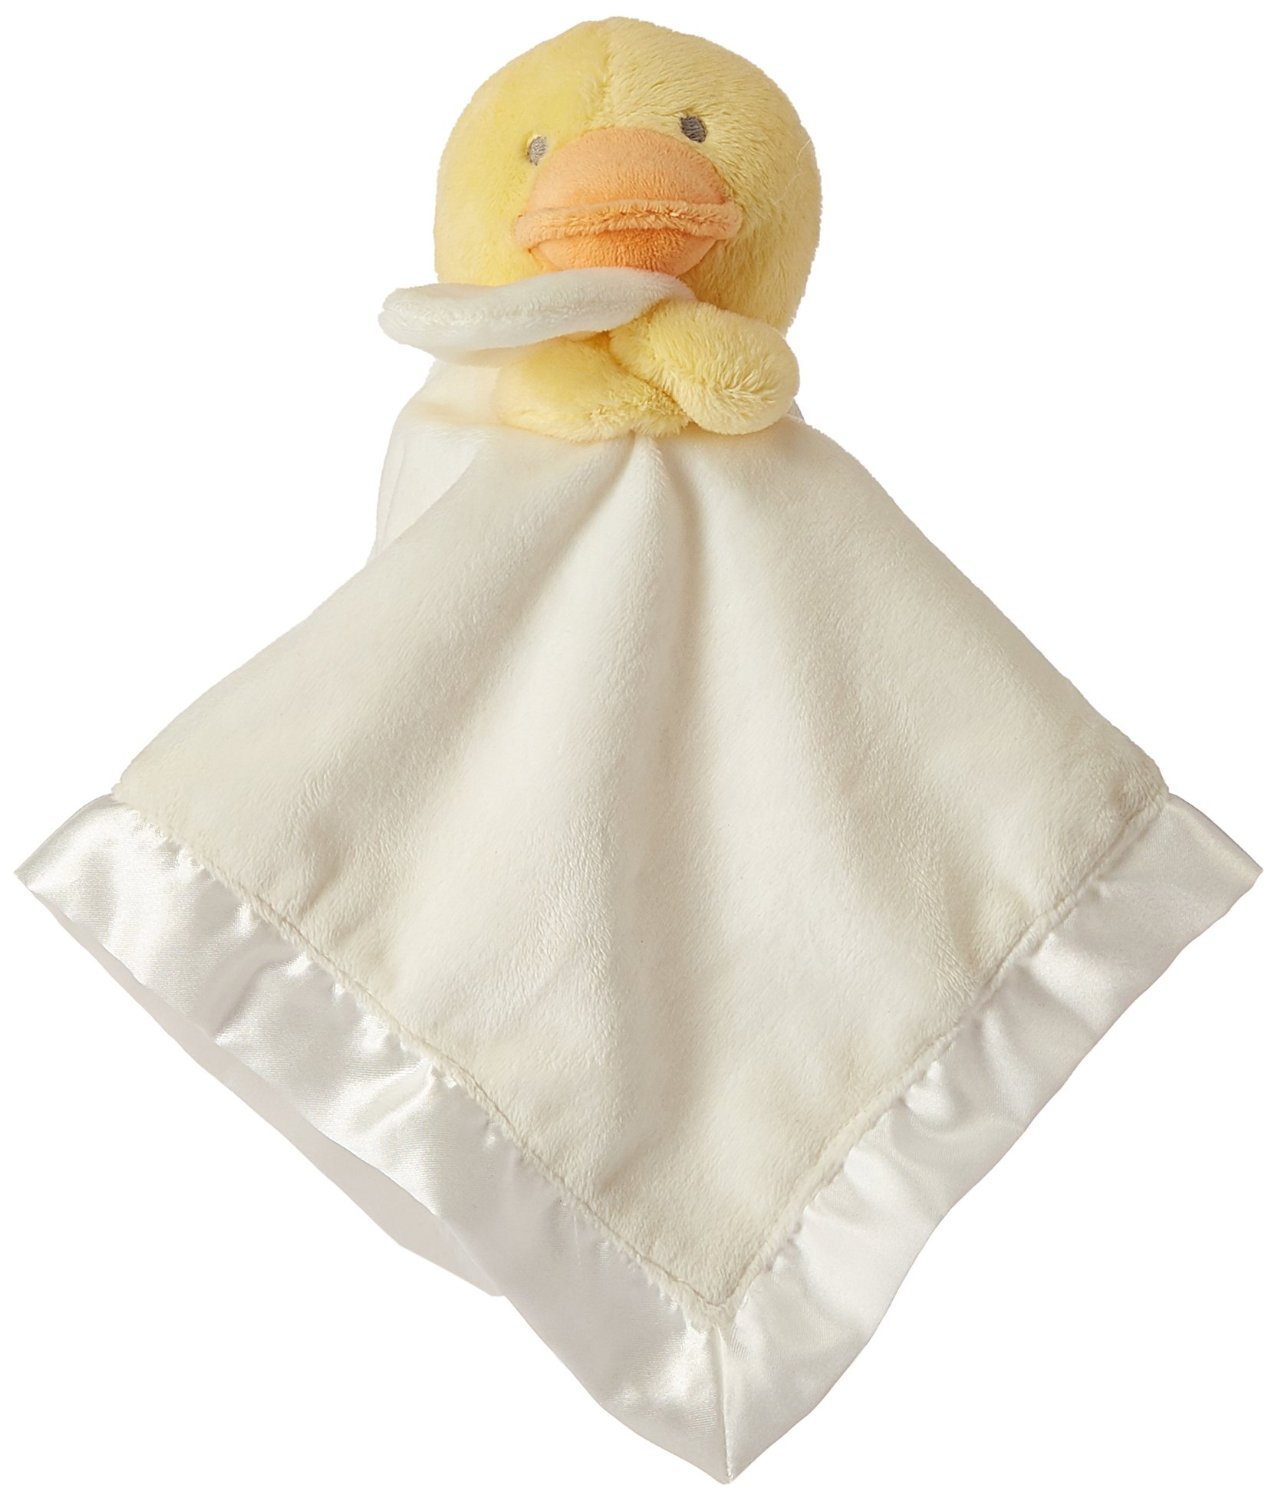 Carter's Baby Boy Girls Yellow Duck Security Blanket, Lovey, Nunu